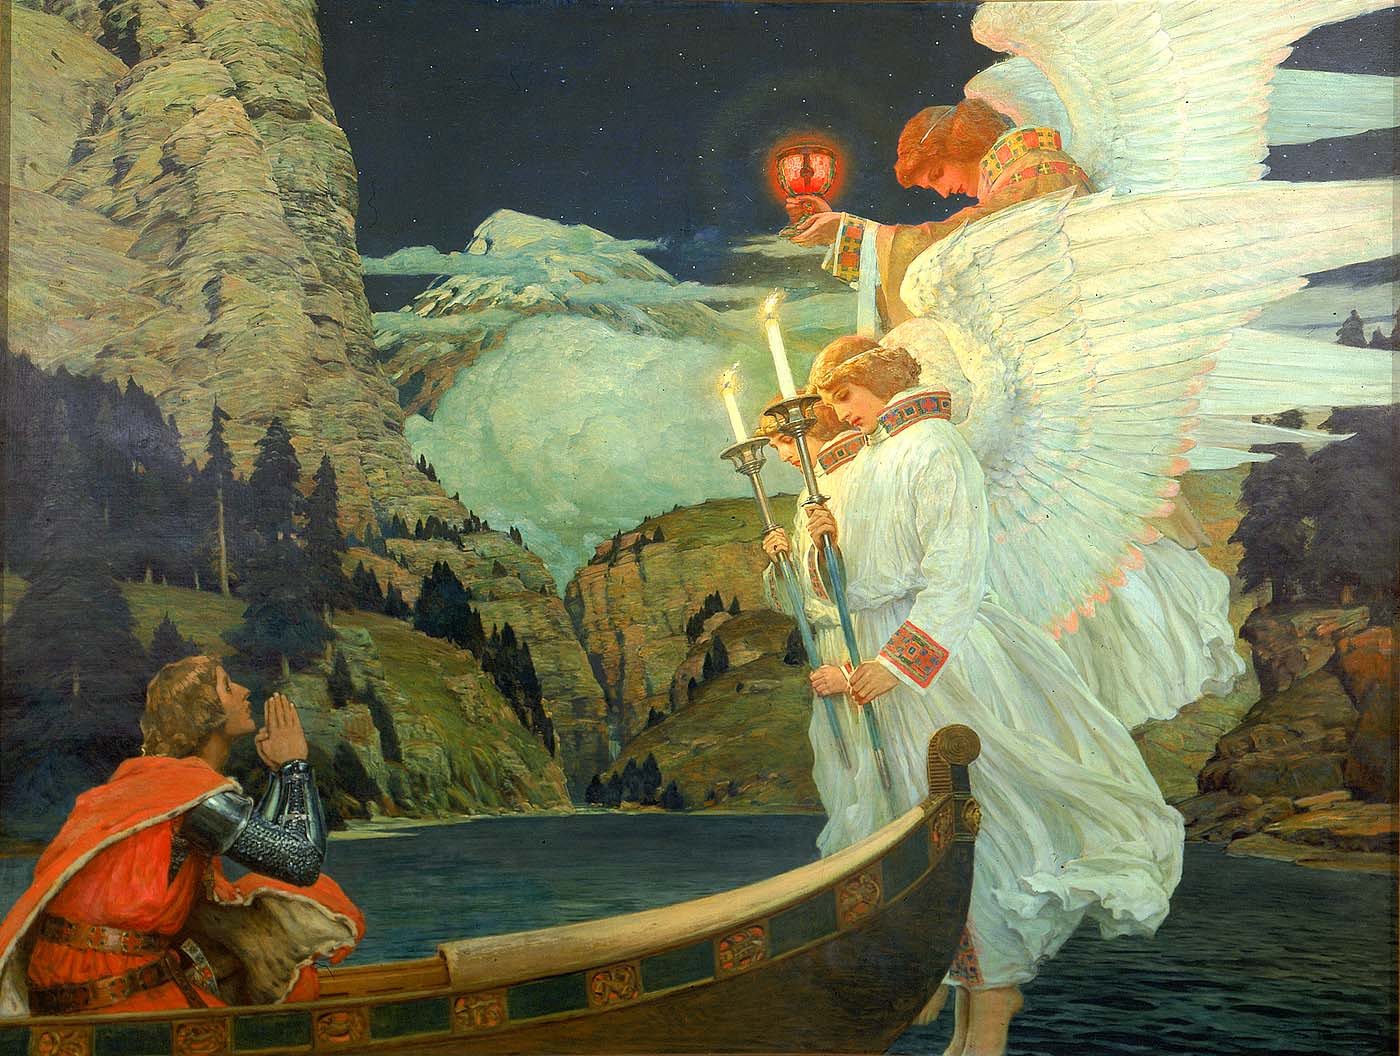 Frederick_J._Waugh_-_The_Knight_of_the_Holy_Grail_-_1912.5.1_-_Smithsonian_American_Art_Museum